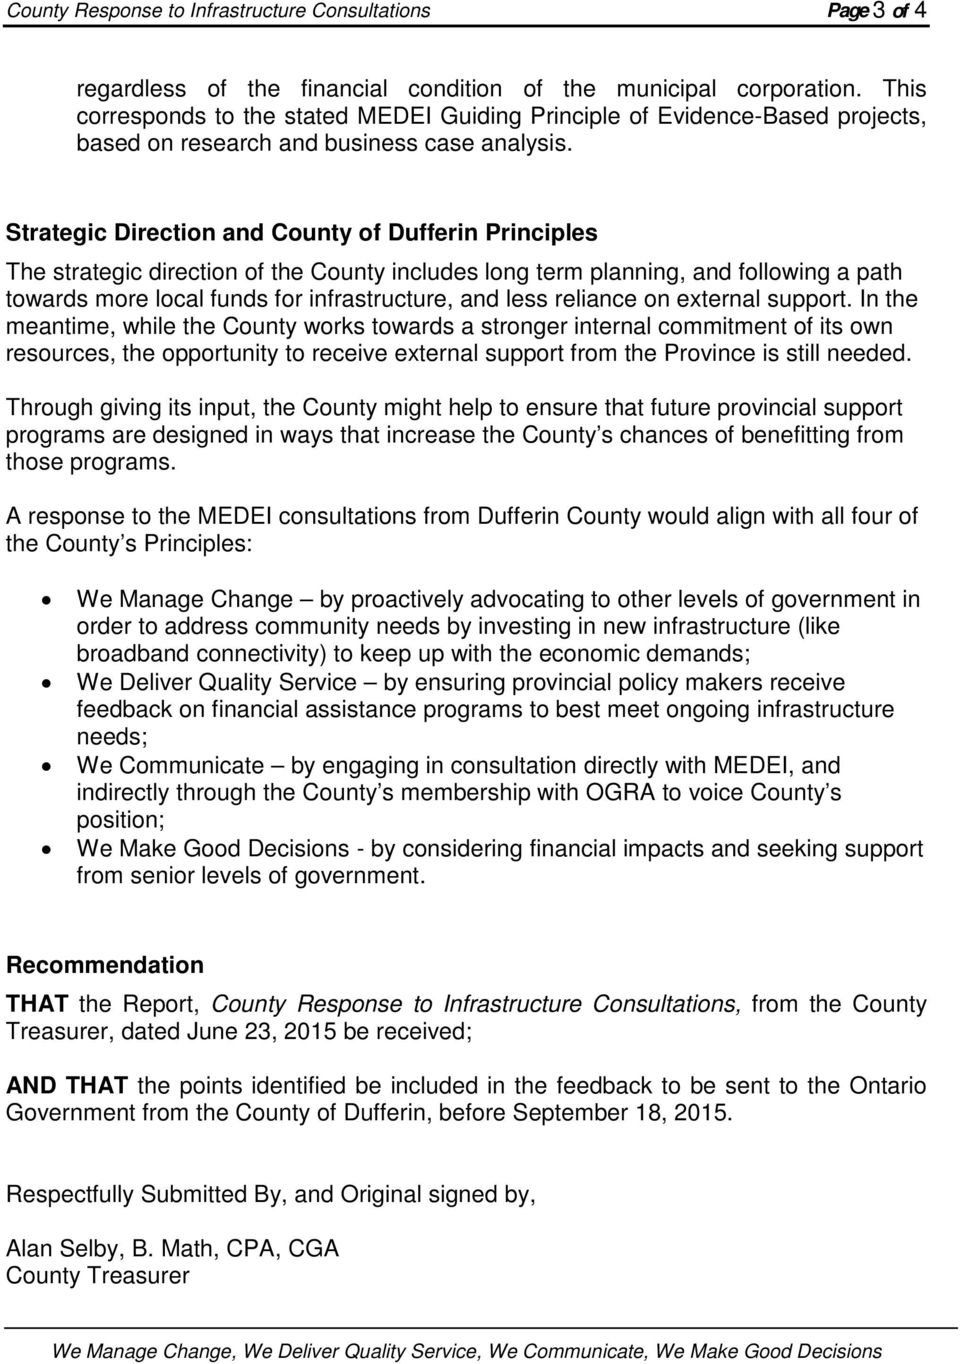 Strategic Direction and County of Dufferin Principles The strategic direction of the County includes long term planning, and following a path towards more local funds for infrastructure, and less